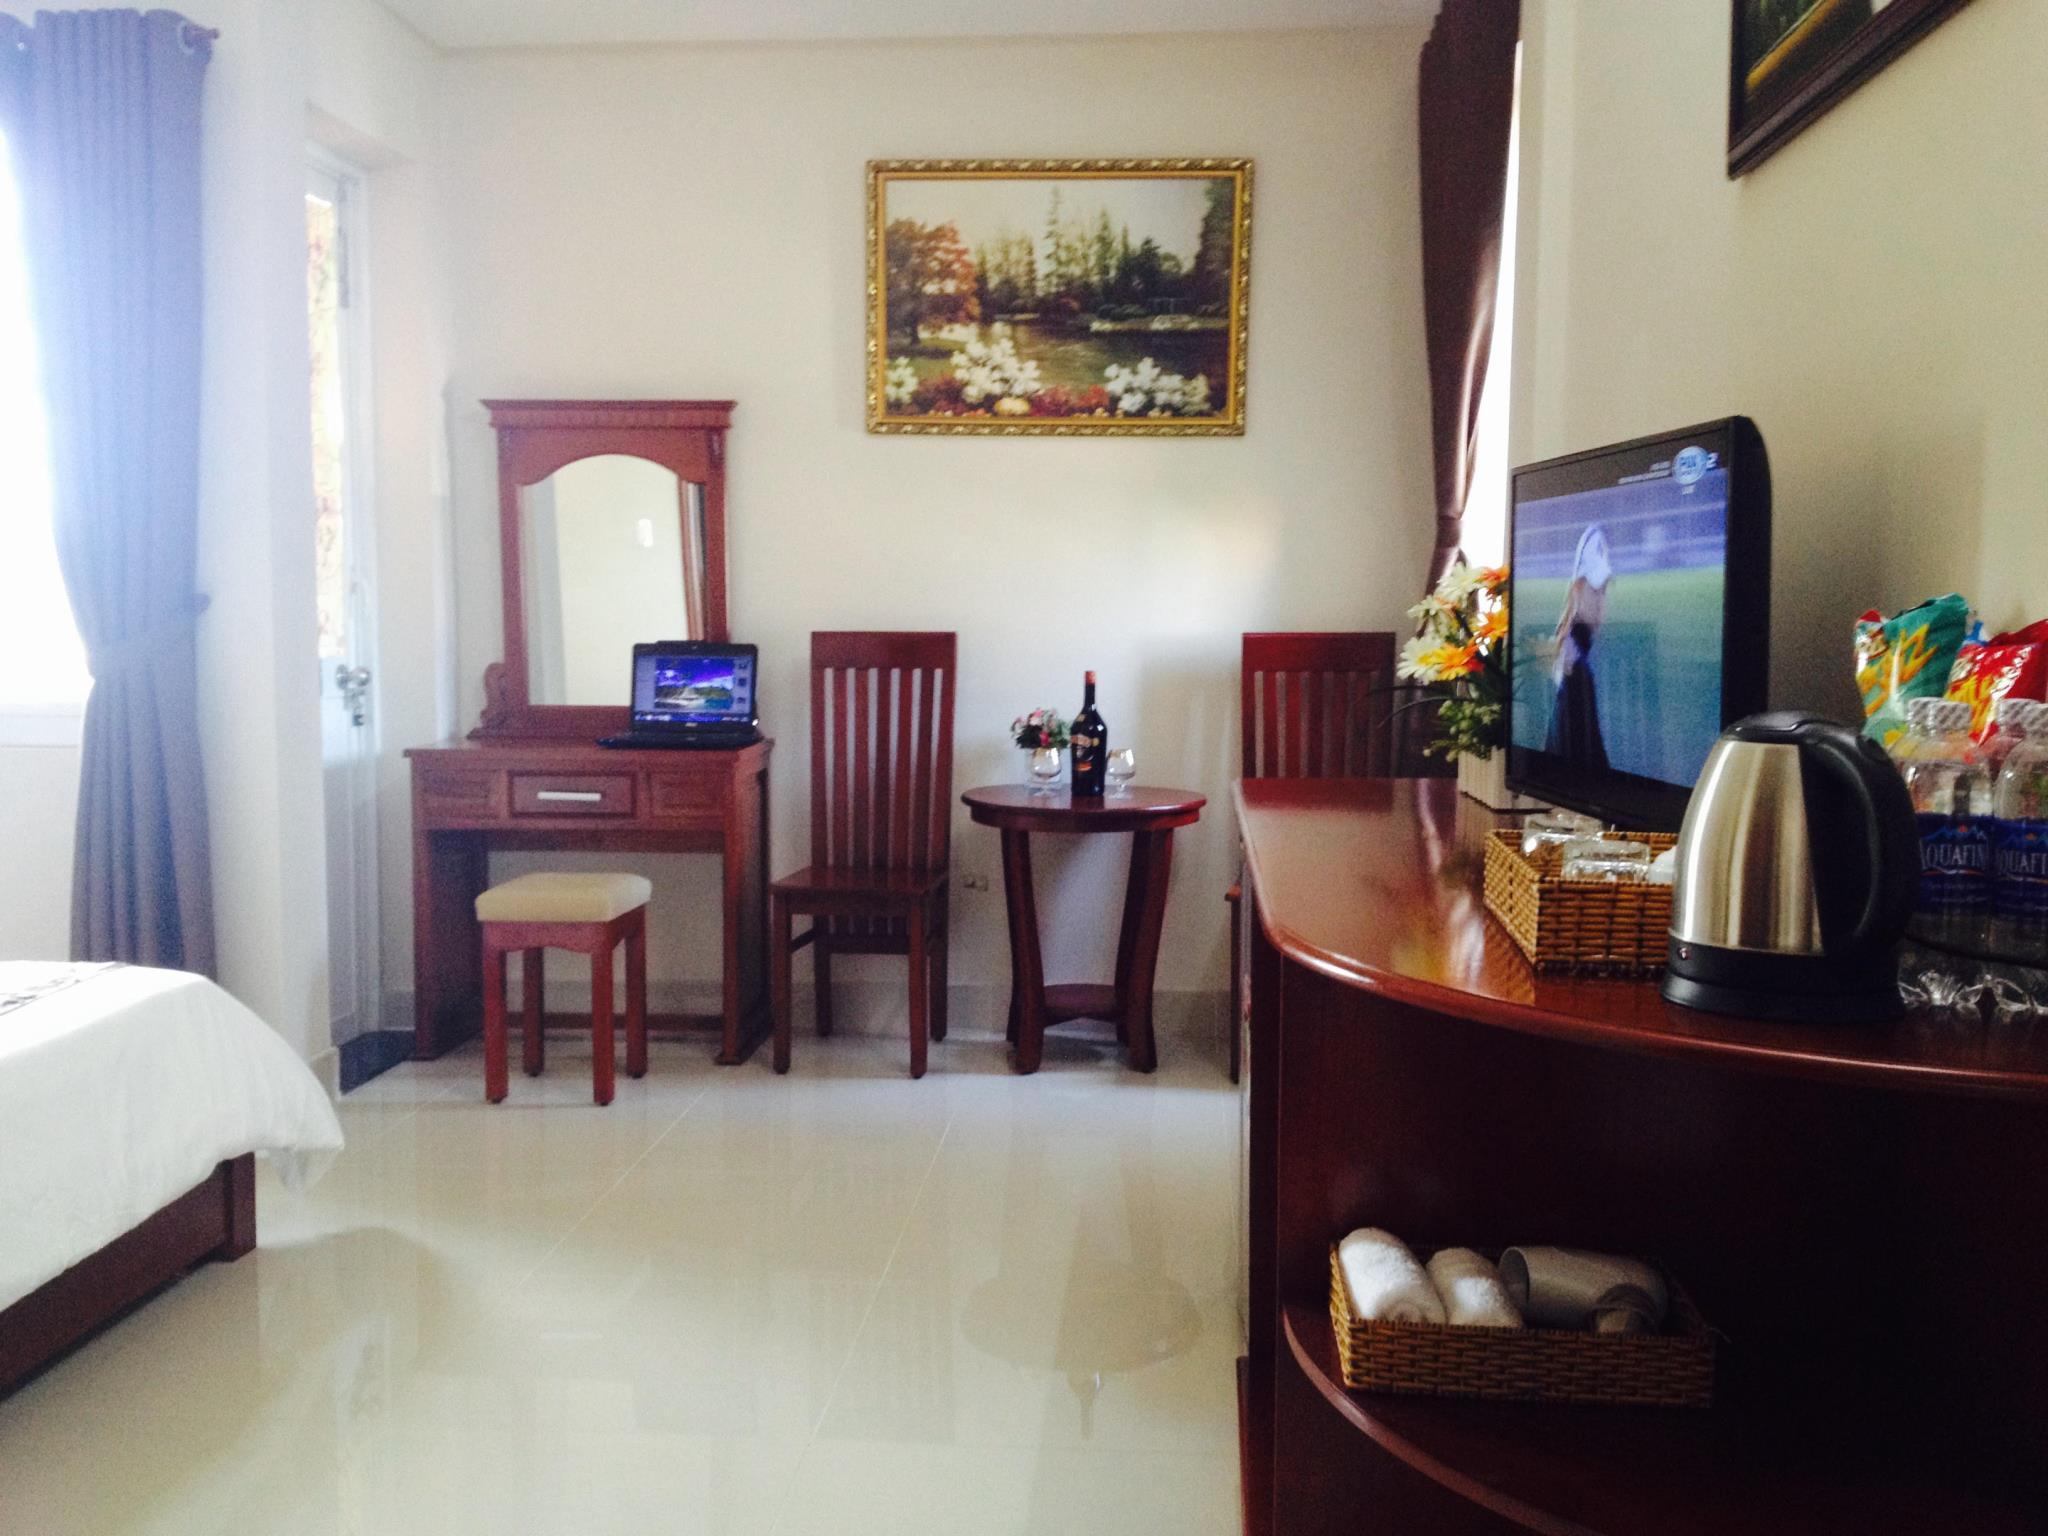 Queen Garden Hotel In Vung Tau